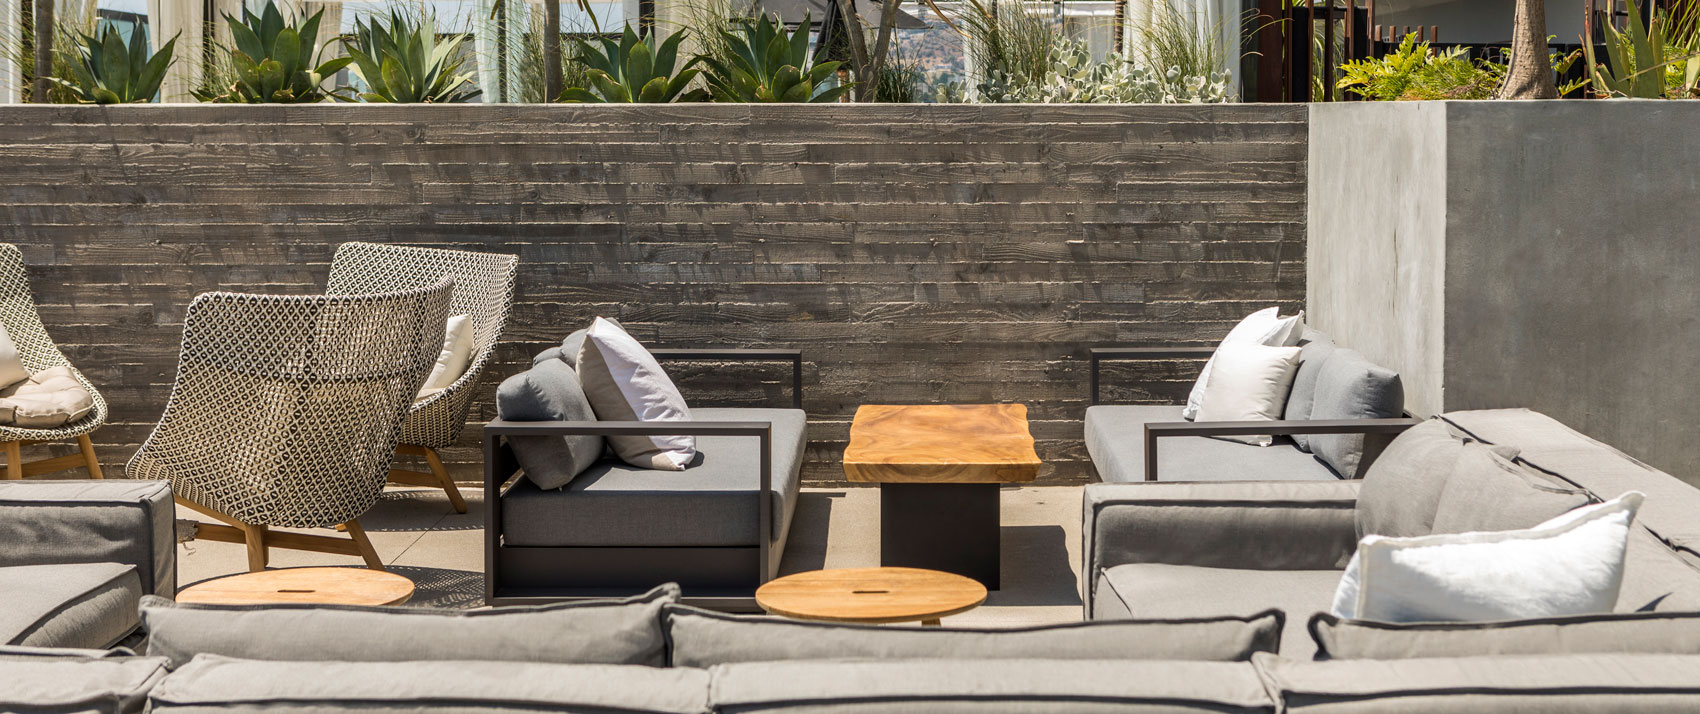 rooftop-lounge-sitting-area-everly-hollywood